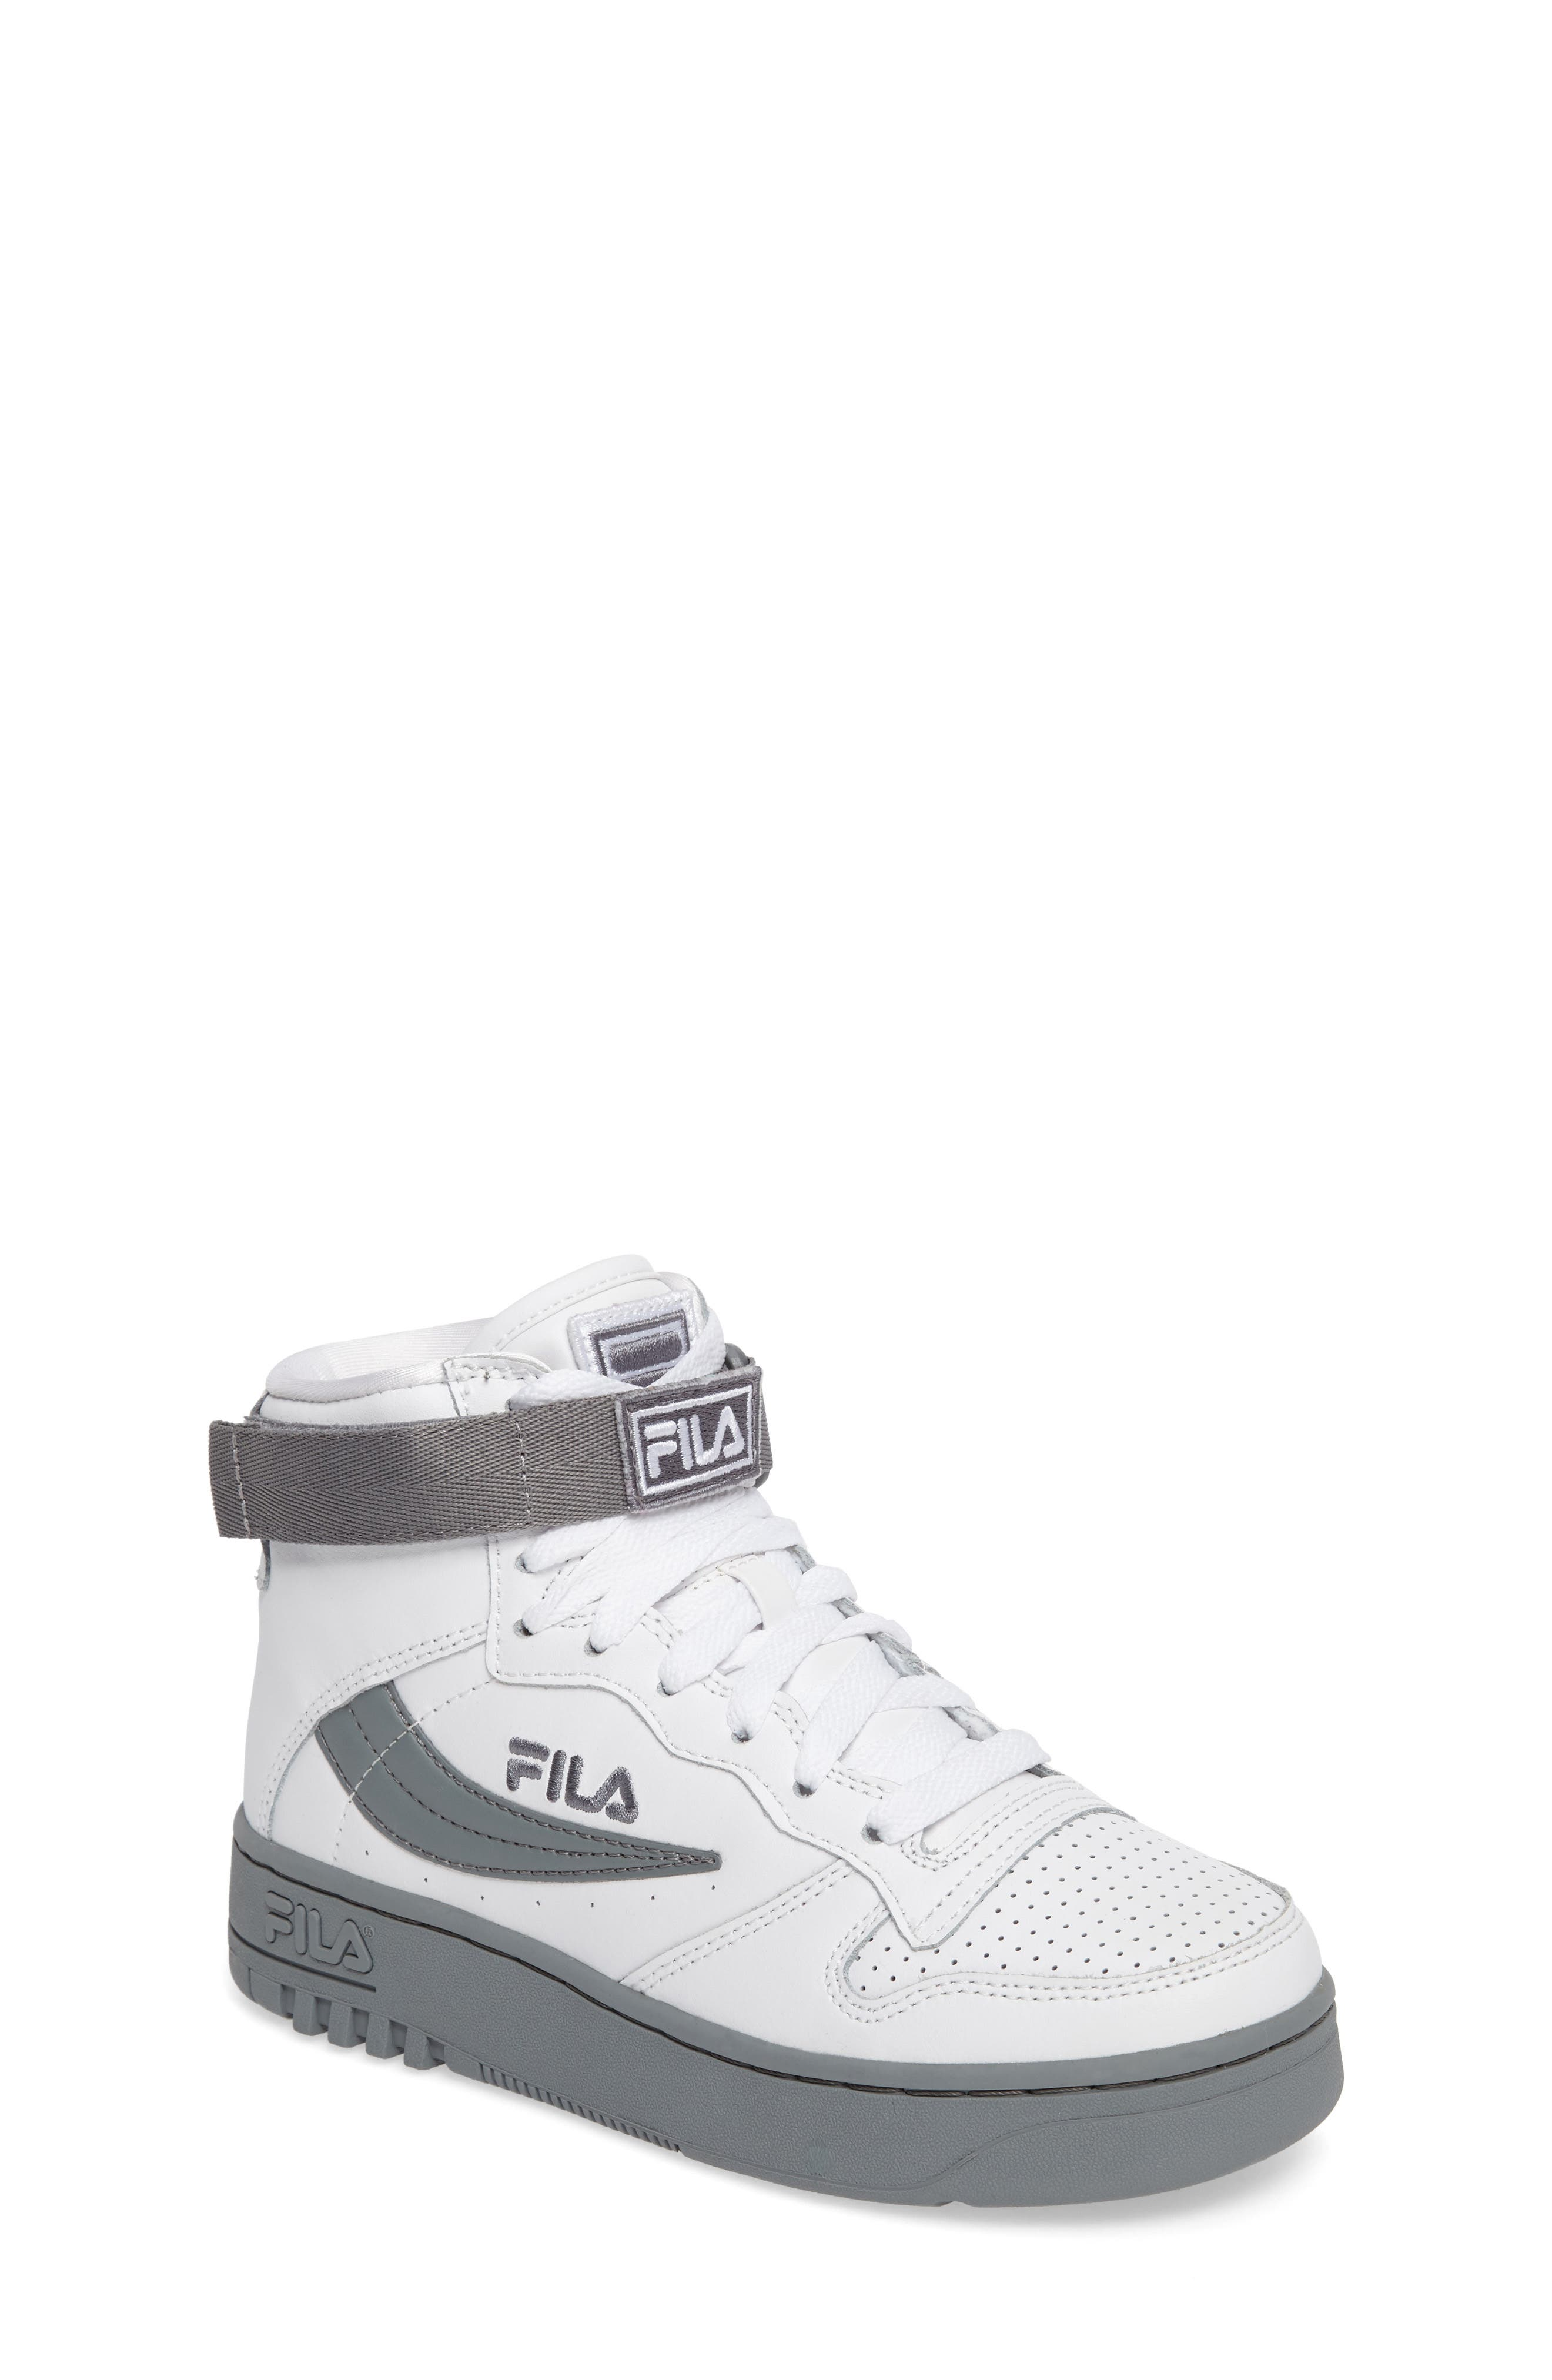 FX-100 High Top Sneaker,                         Main,                         color,